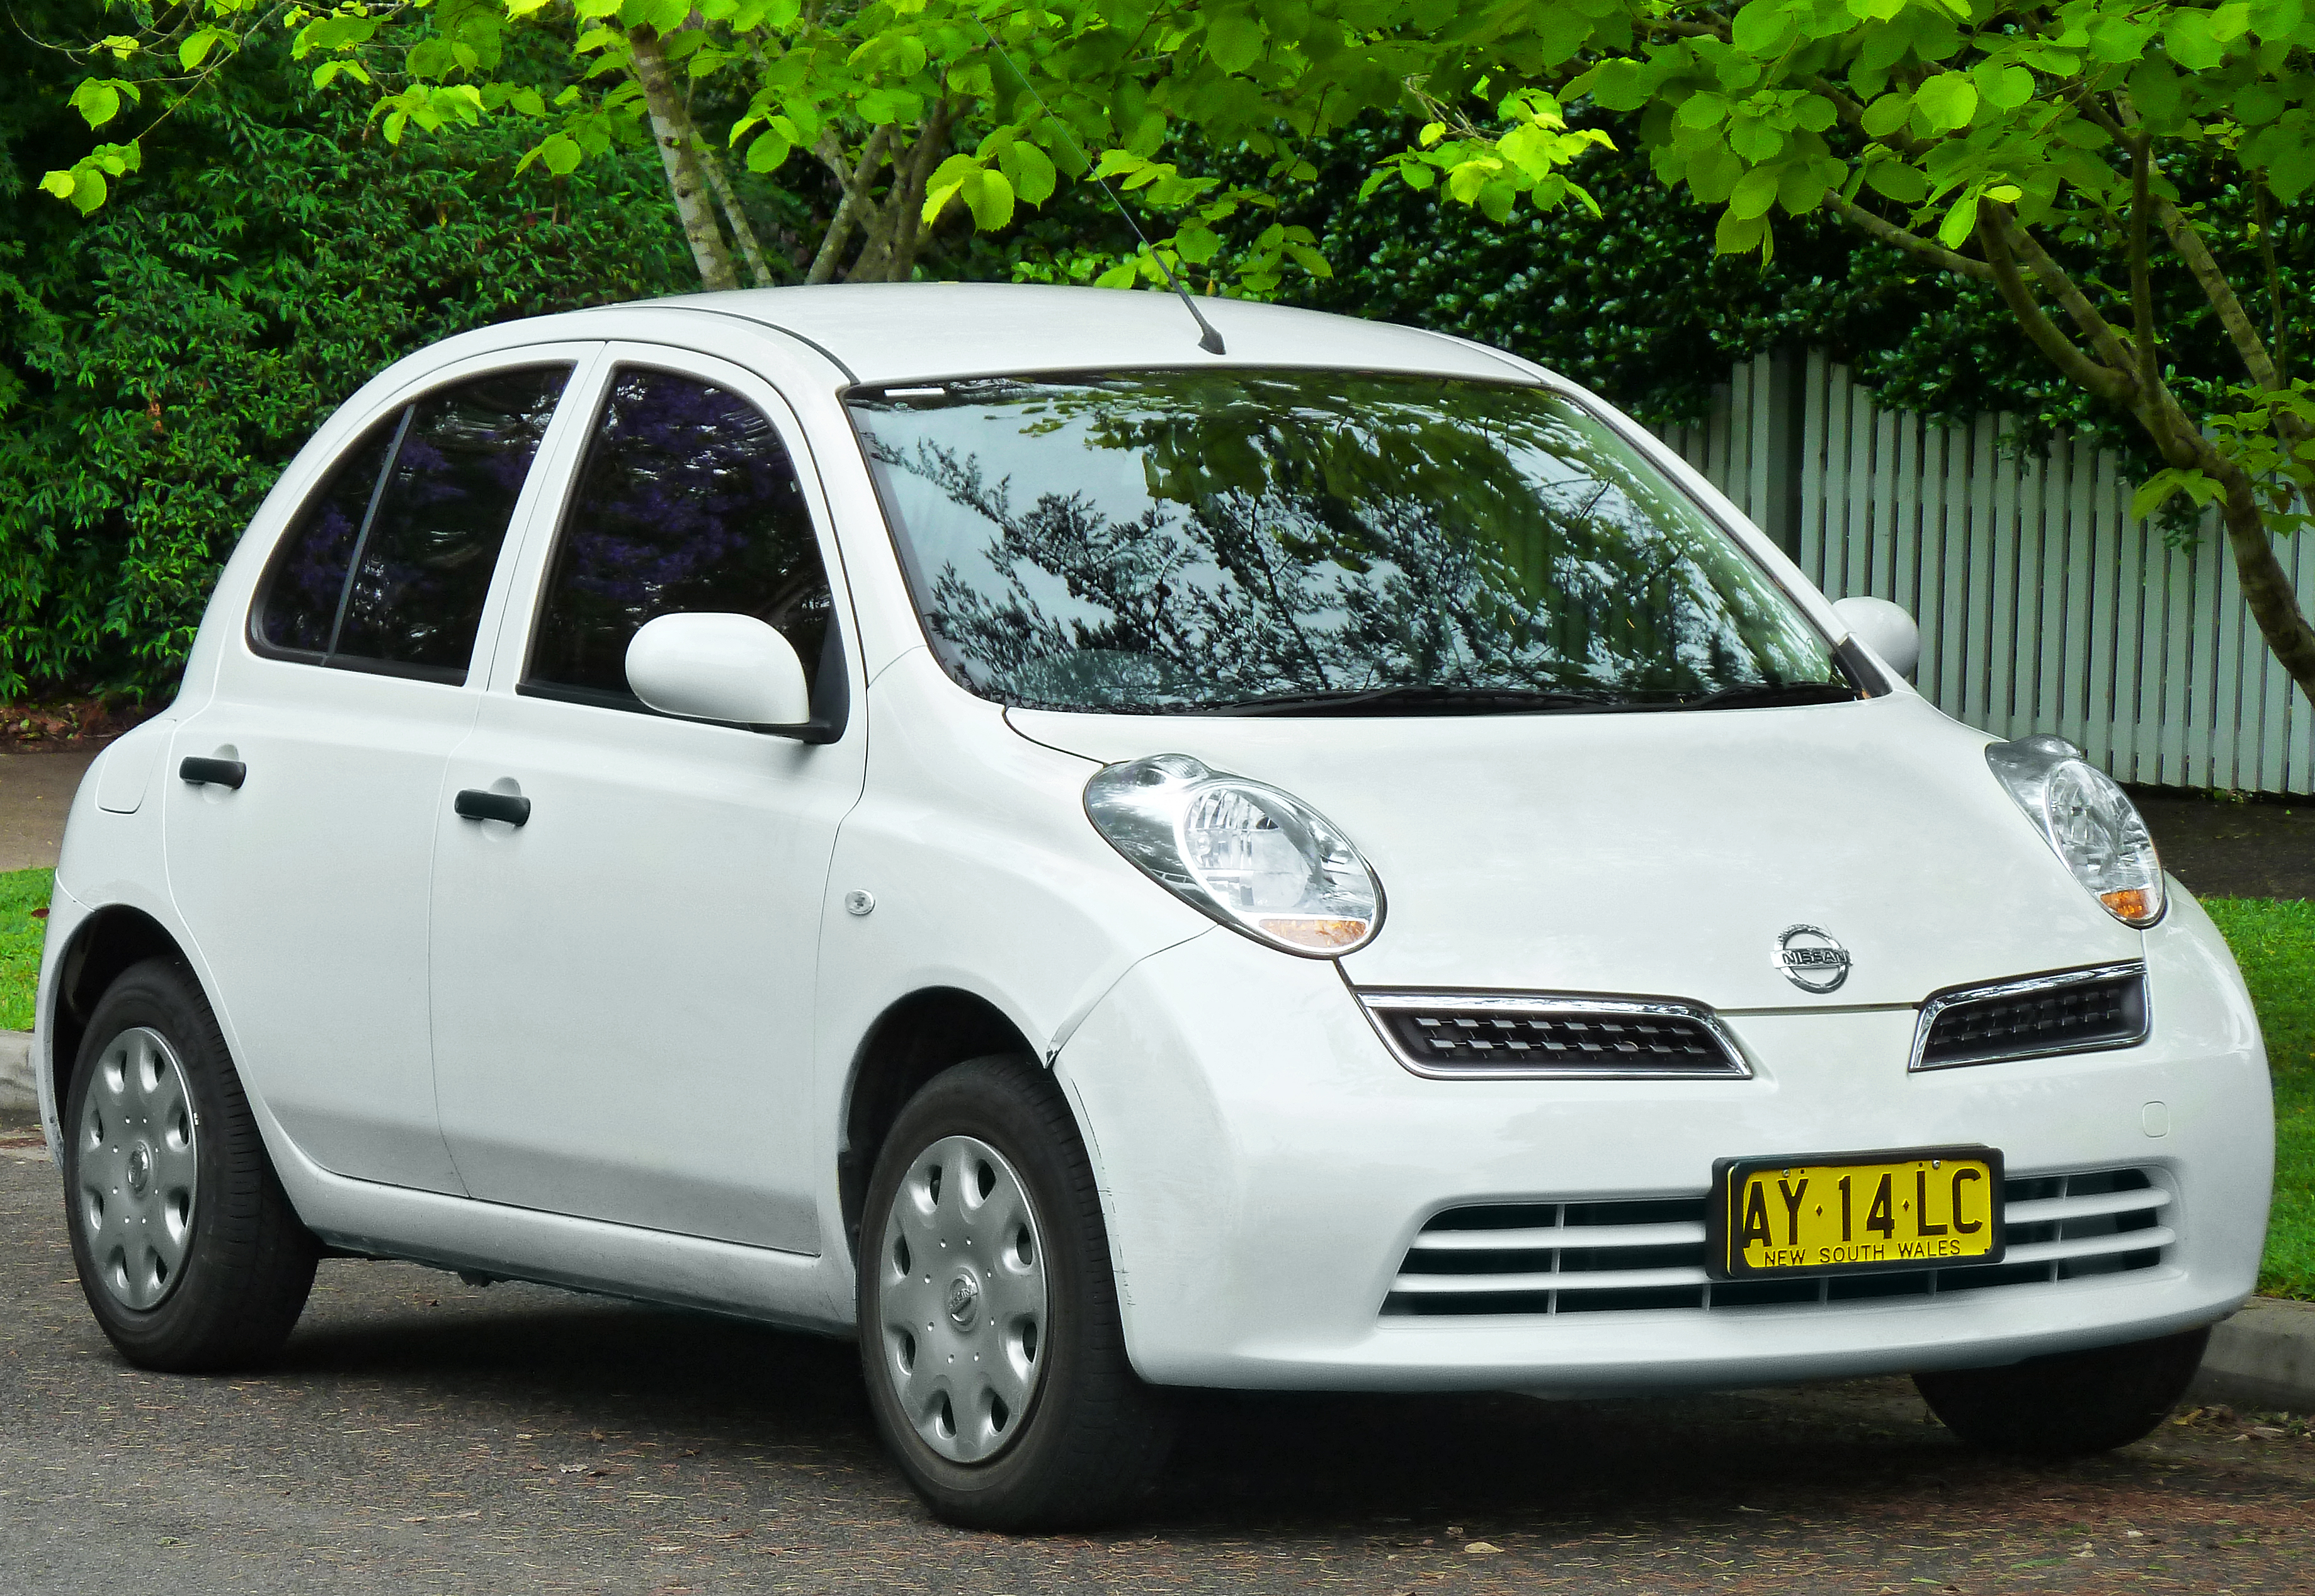 2006 nissan micra k12 pictures information and specs auto. Black Bedroom Furniture Sets. Home Design Ideas